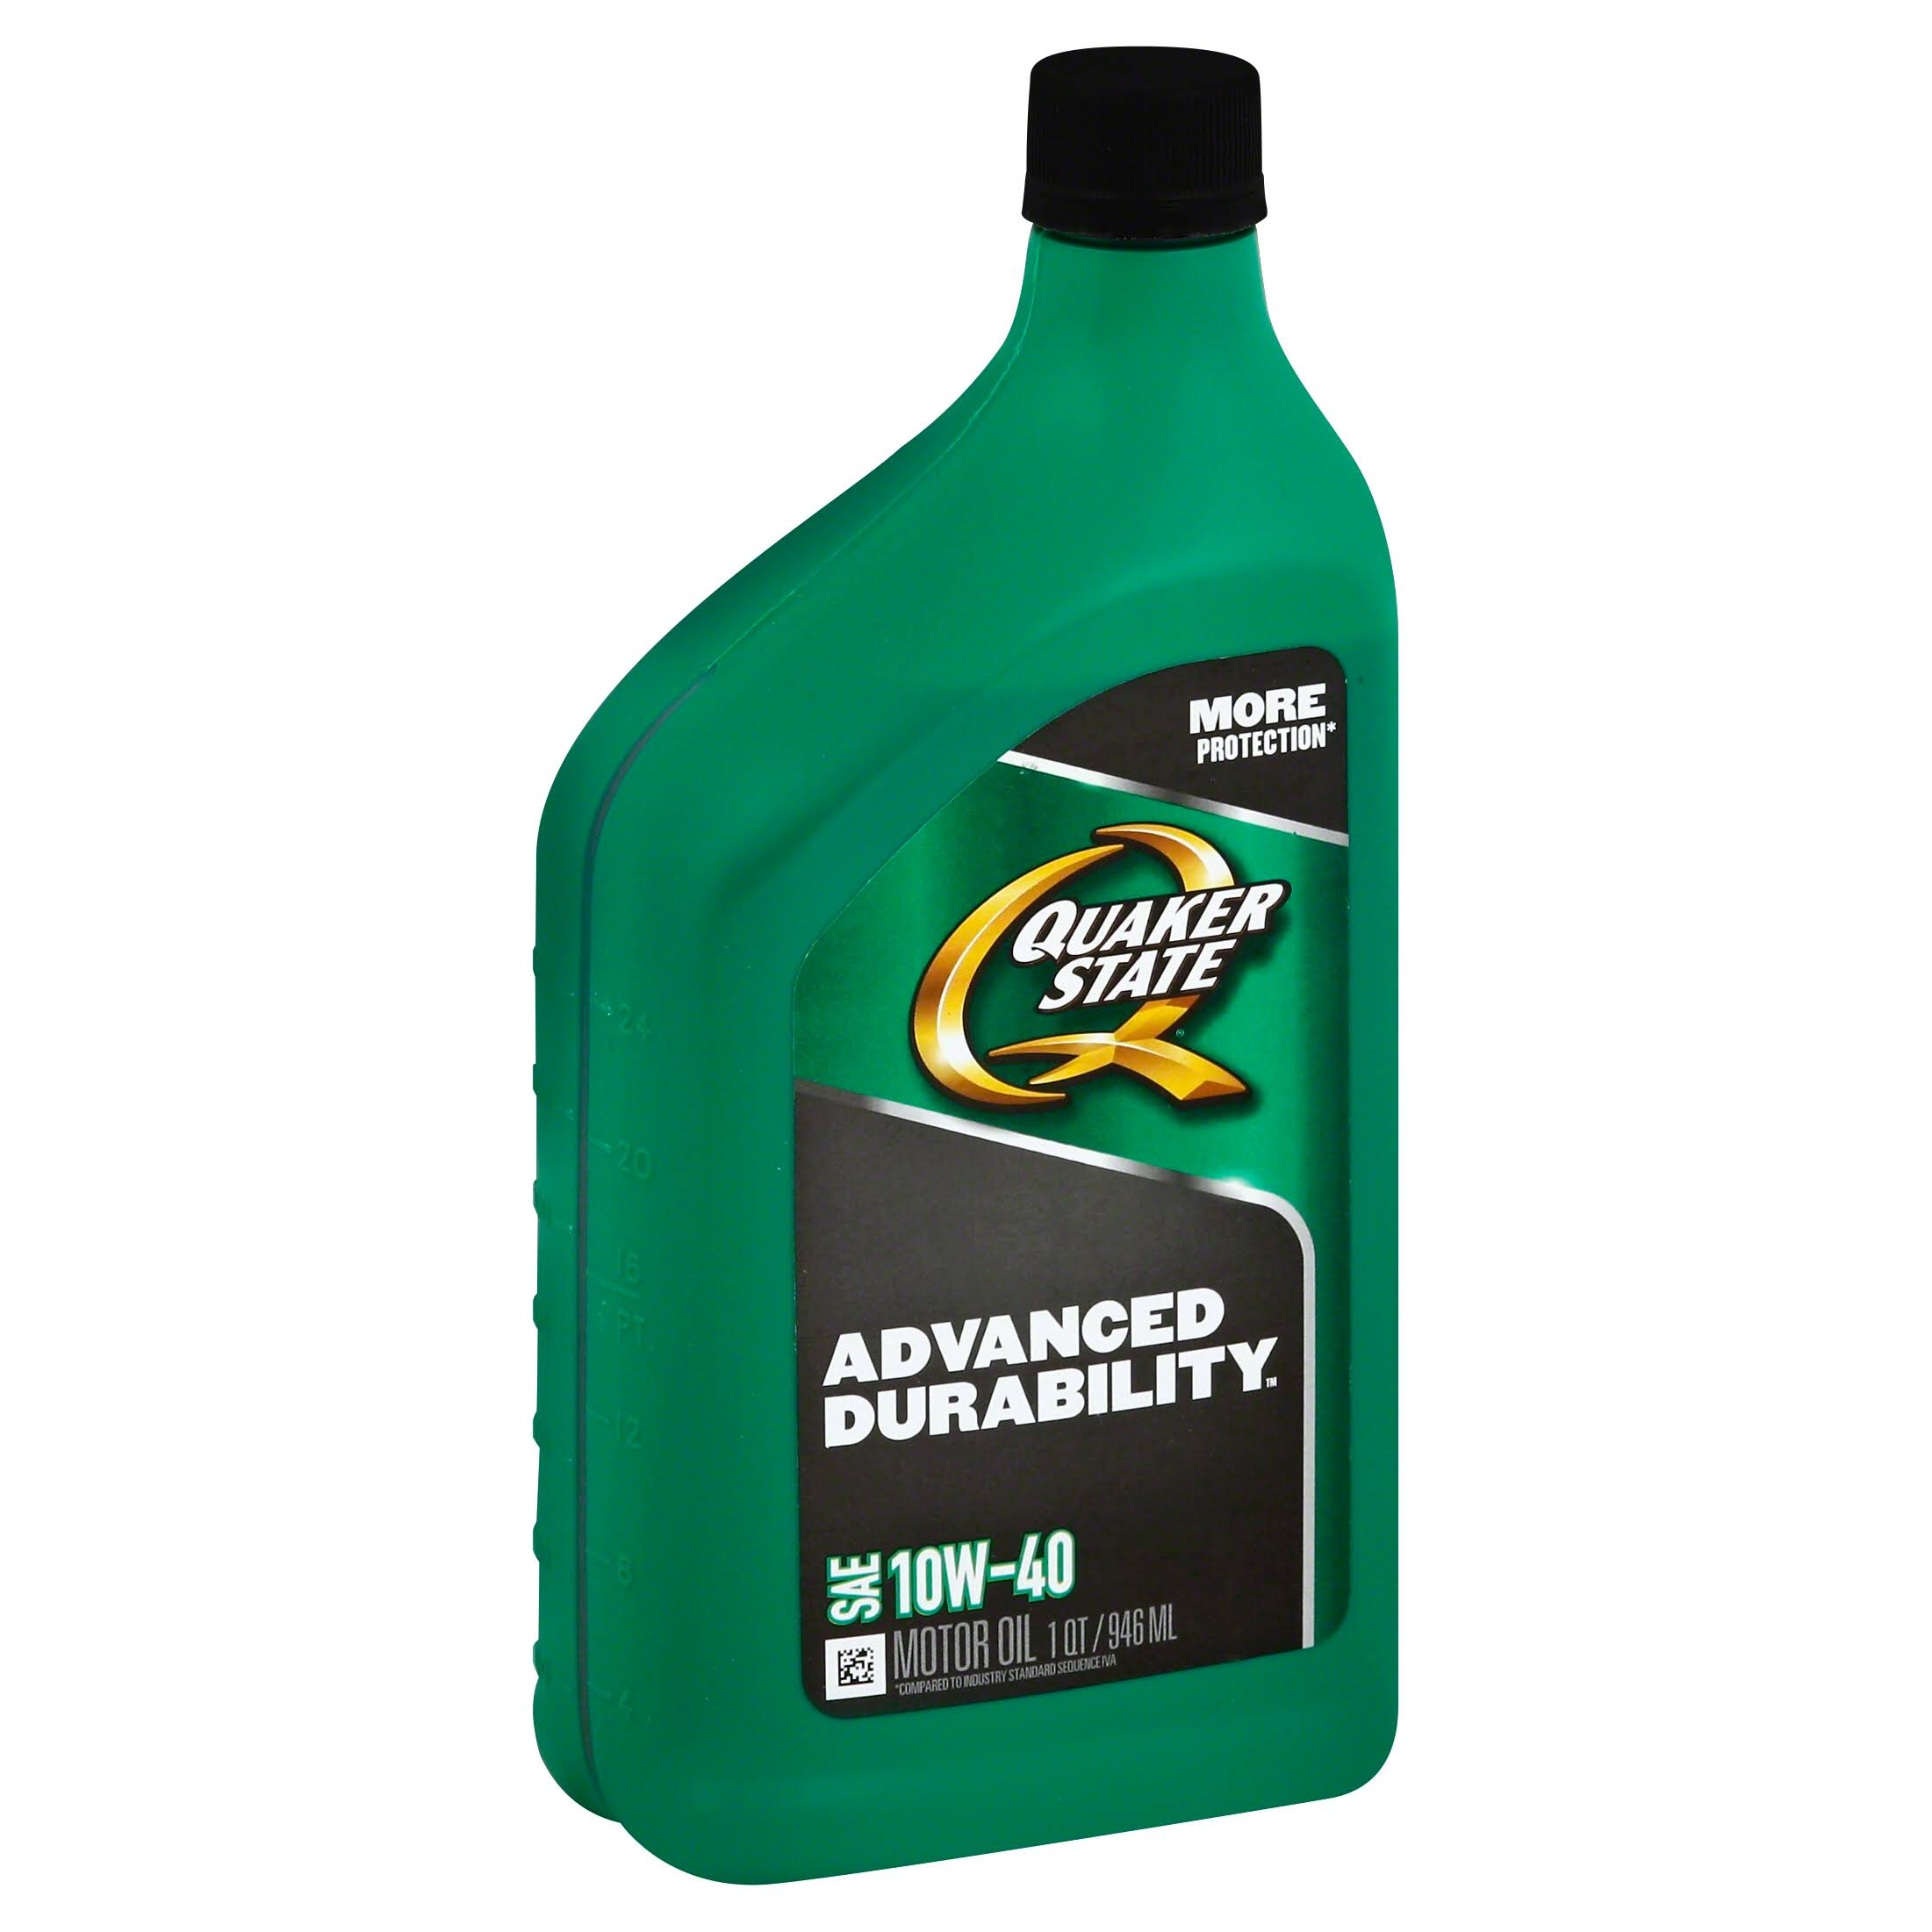 Quaker State Motor Oil - 32oz